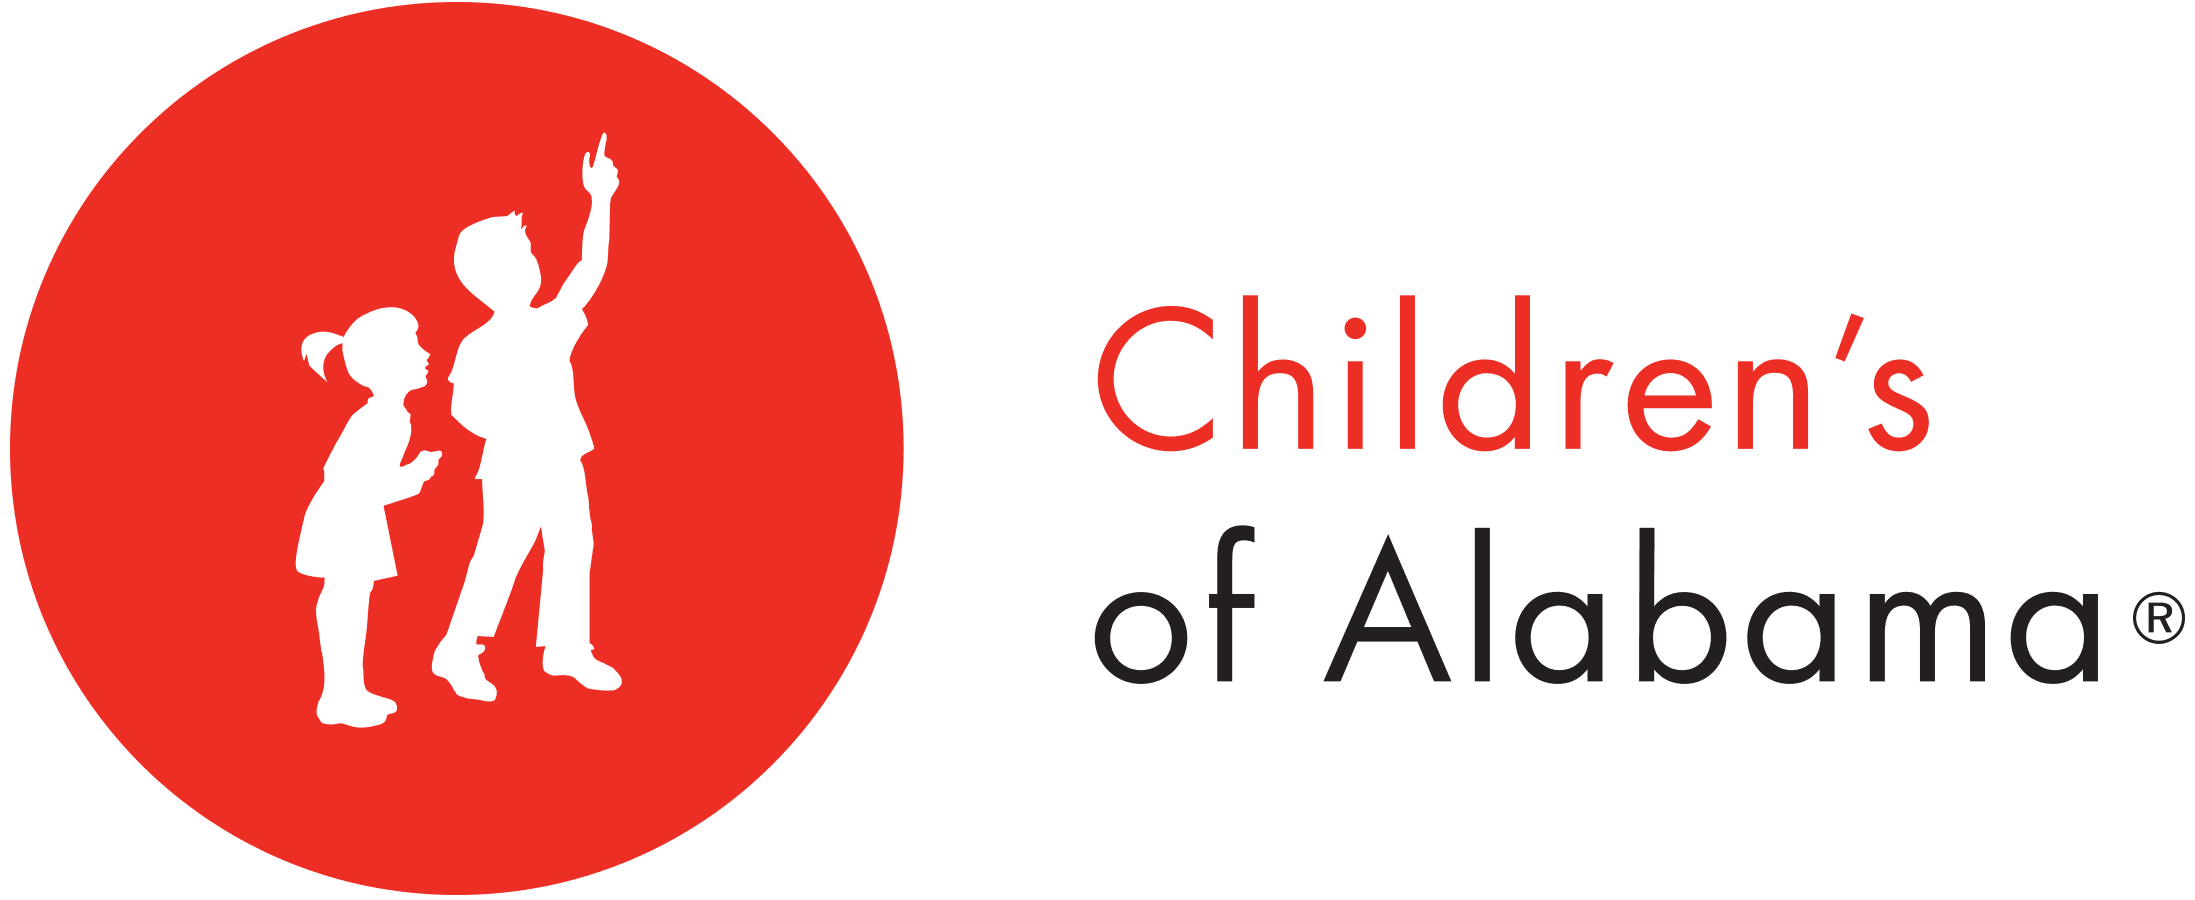 Children's of Alabama Deploys Vivify Health Solution to Closely Monitor Infants with Congenital Heart Disease at Home